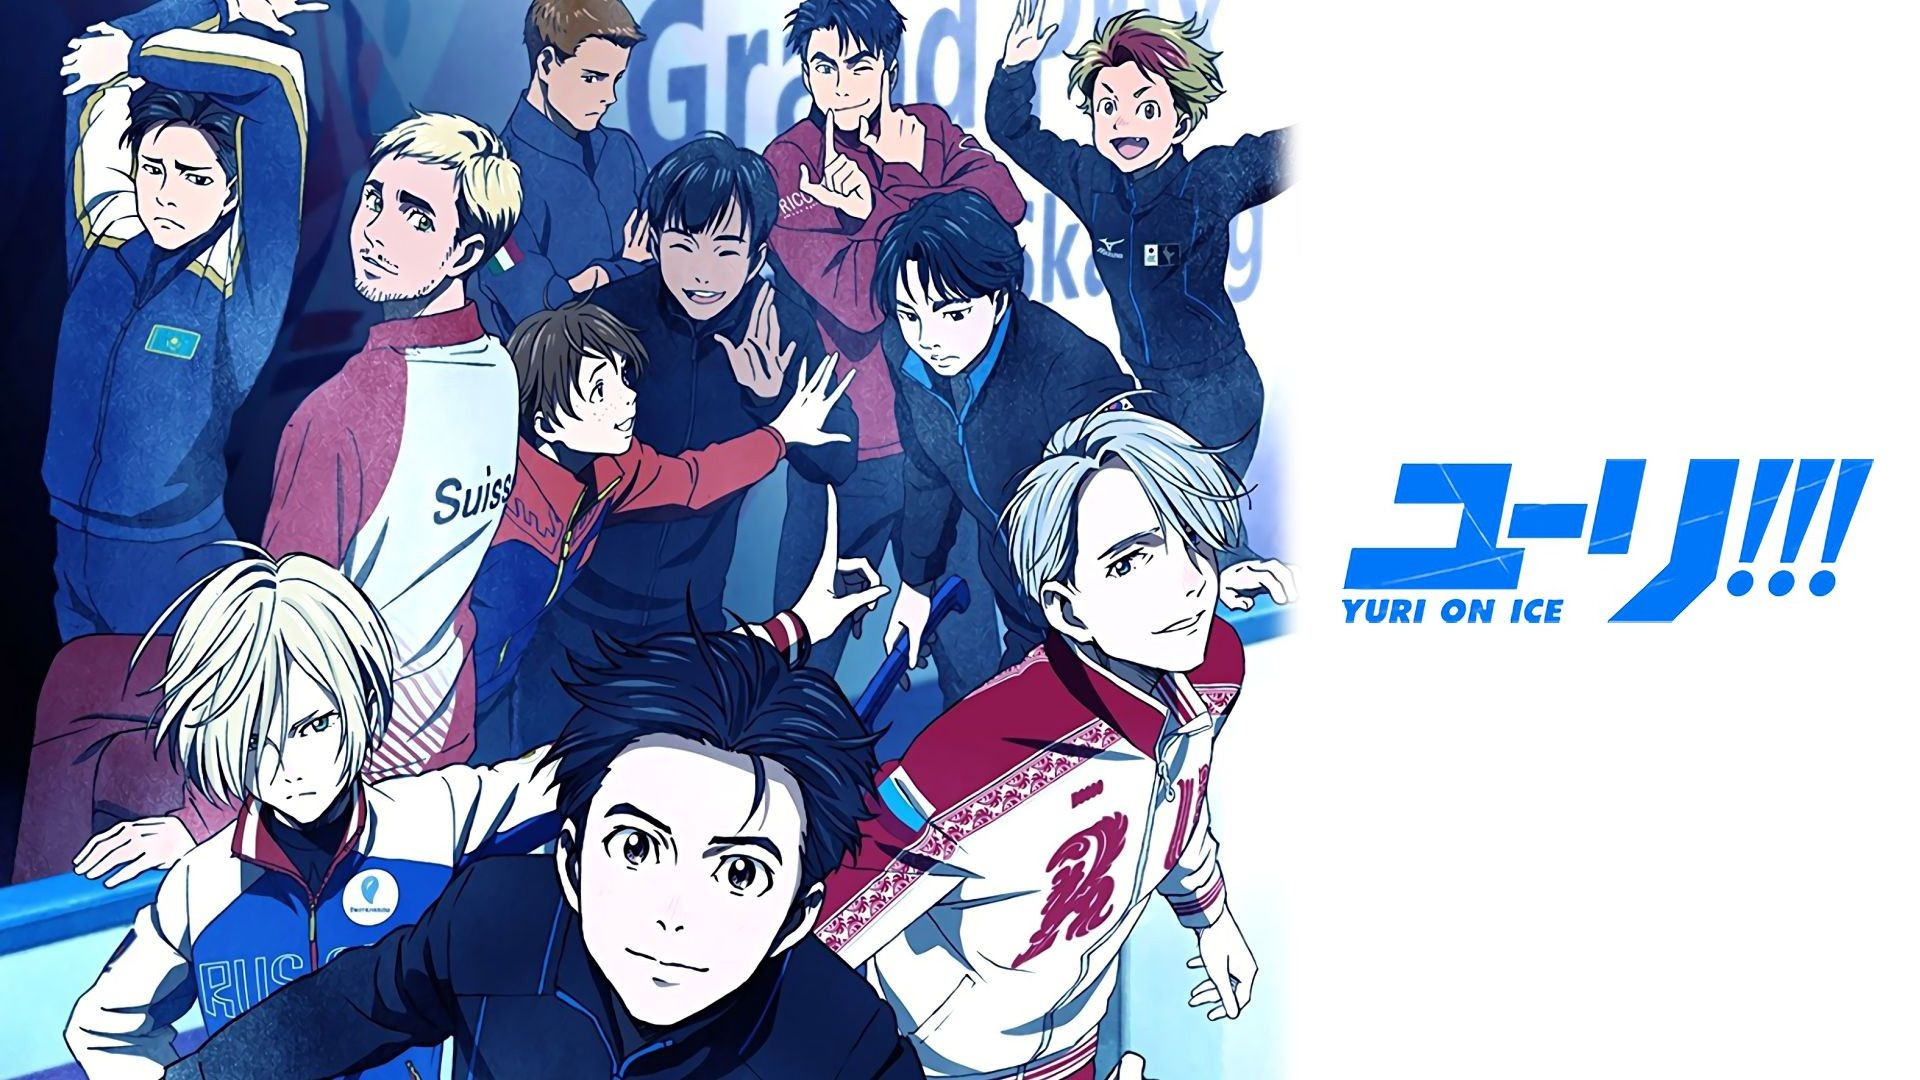 Yuri On Ice Wallpaper